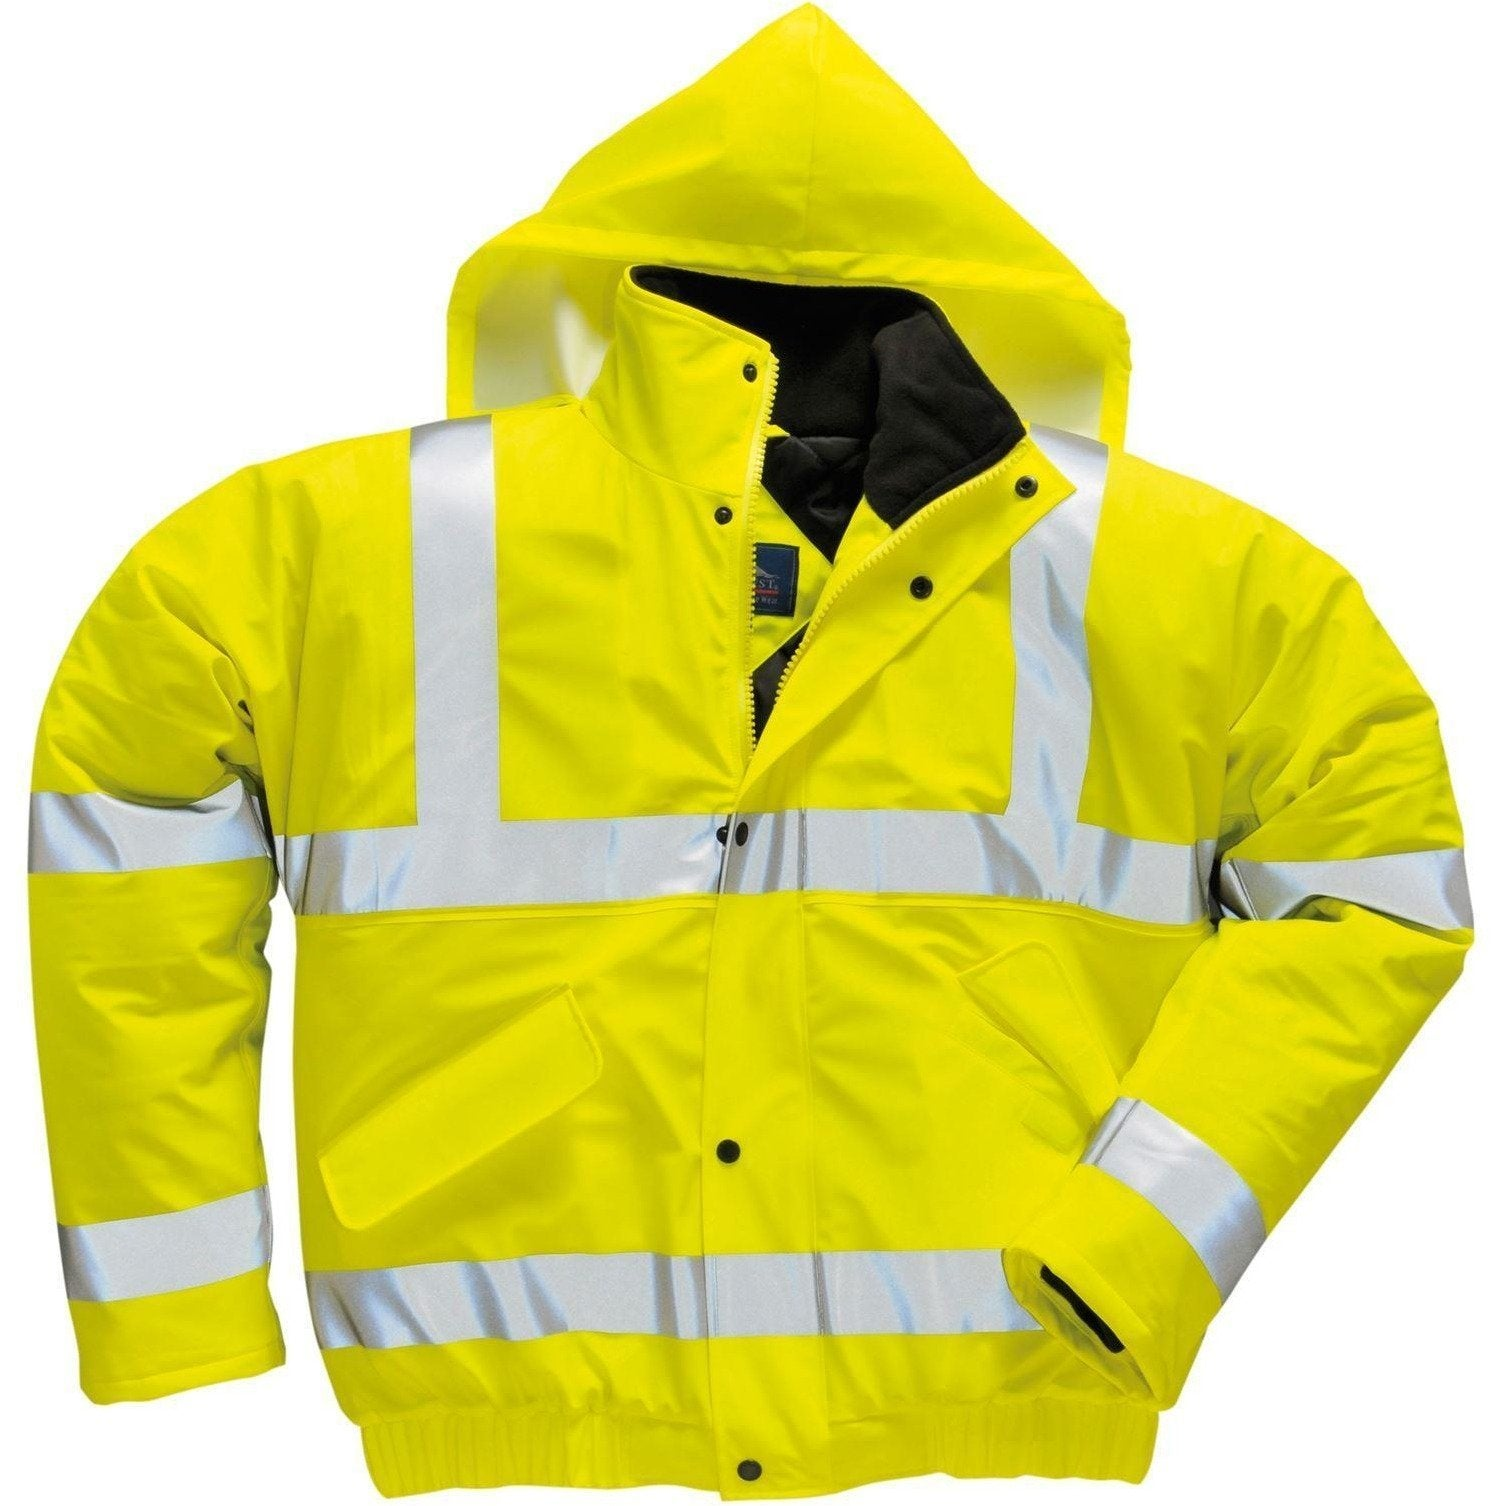 Portwest Sealtex Ultra Bomber Jacket (Yellow) S498 - reid outdoors